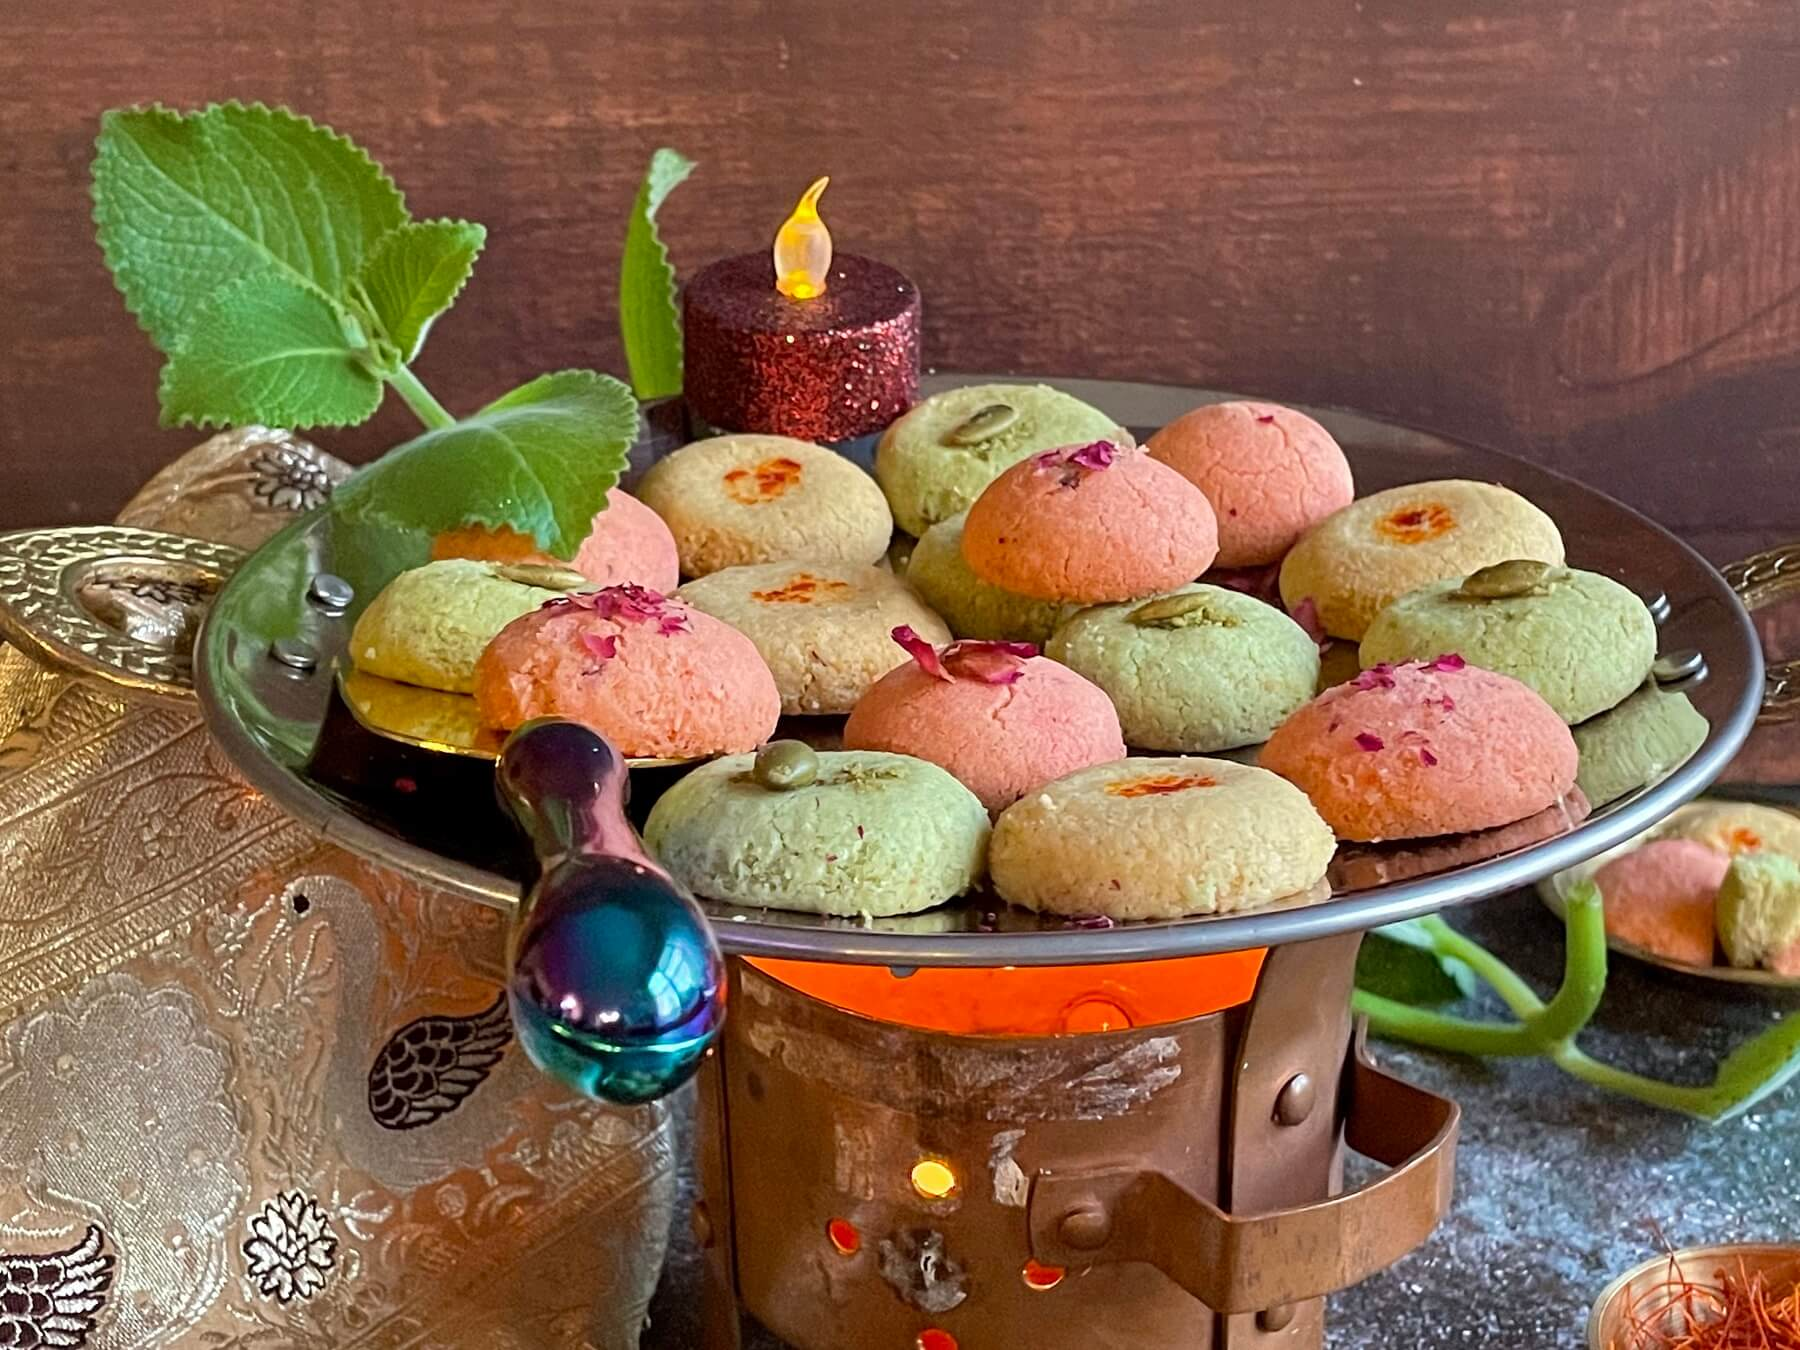 Flavored with rose, pistachio and saffron-cardamom, these Nankhatais are a simple, yet elegant dessert for this upcoming festive season! These beautiful cookies with three different flavors are a memorable twist on traditional sweets that your family is sure to love for Diwali!